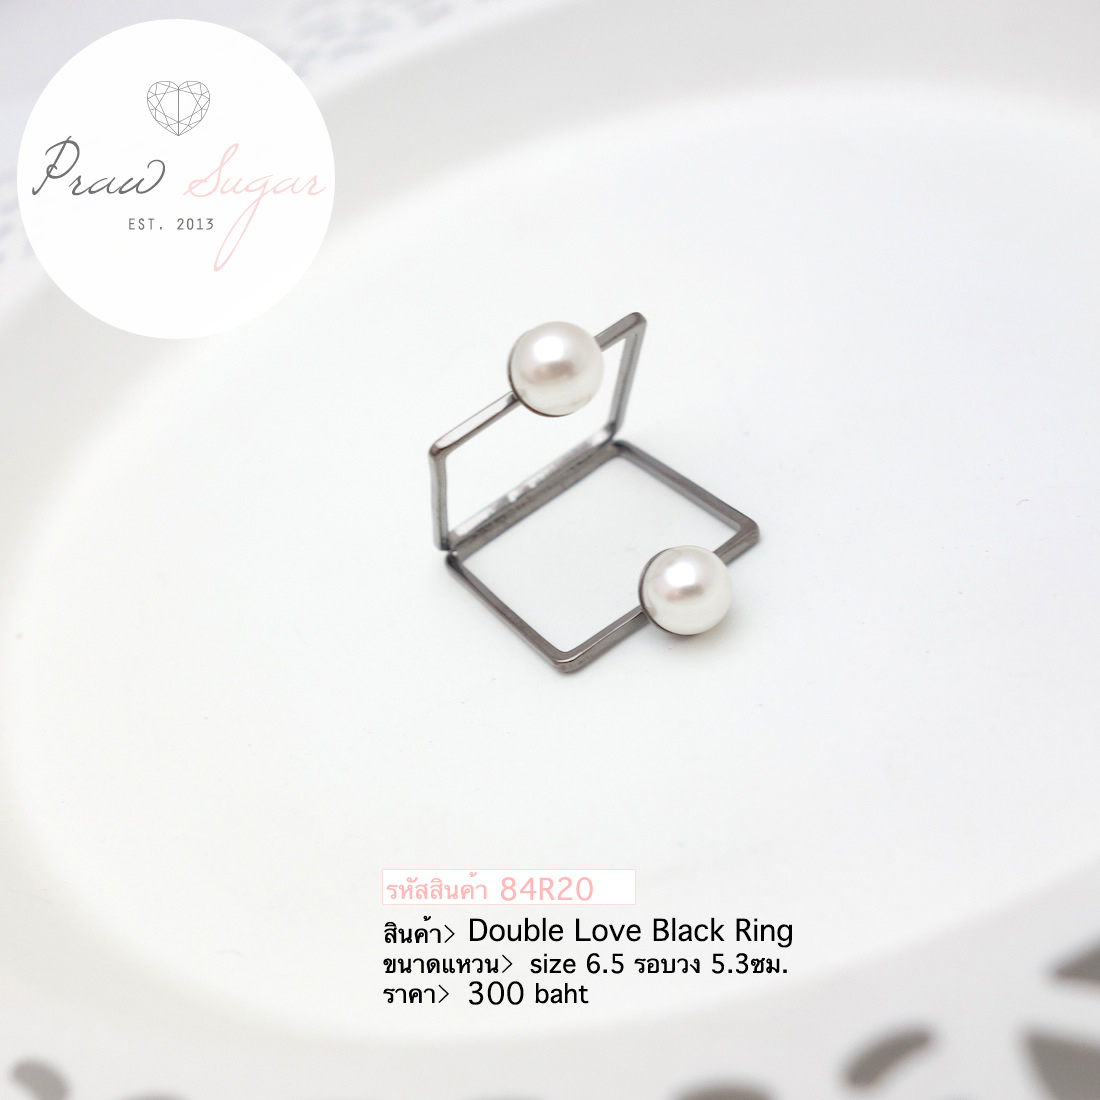 Double Love Black Ring